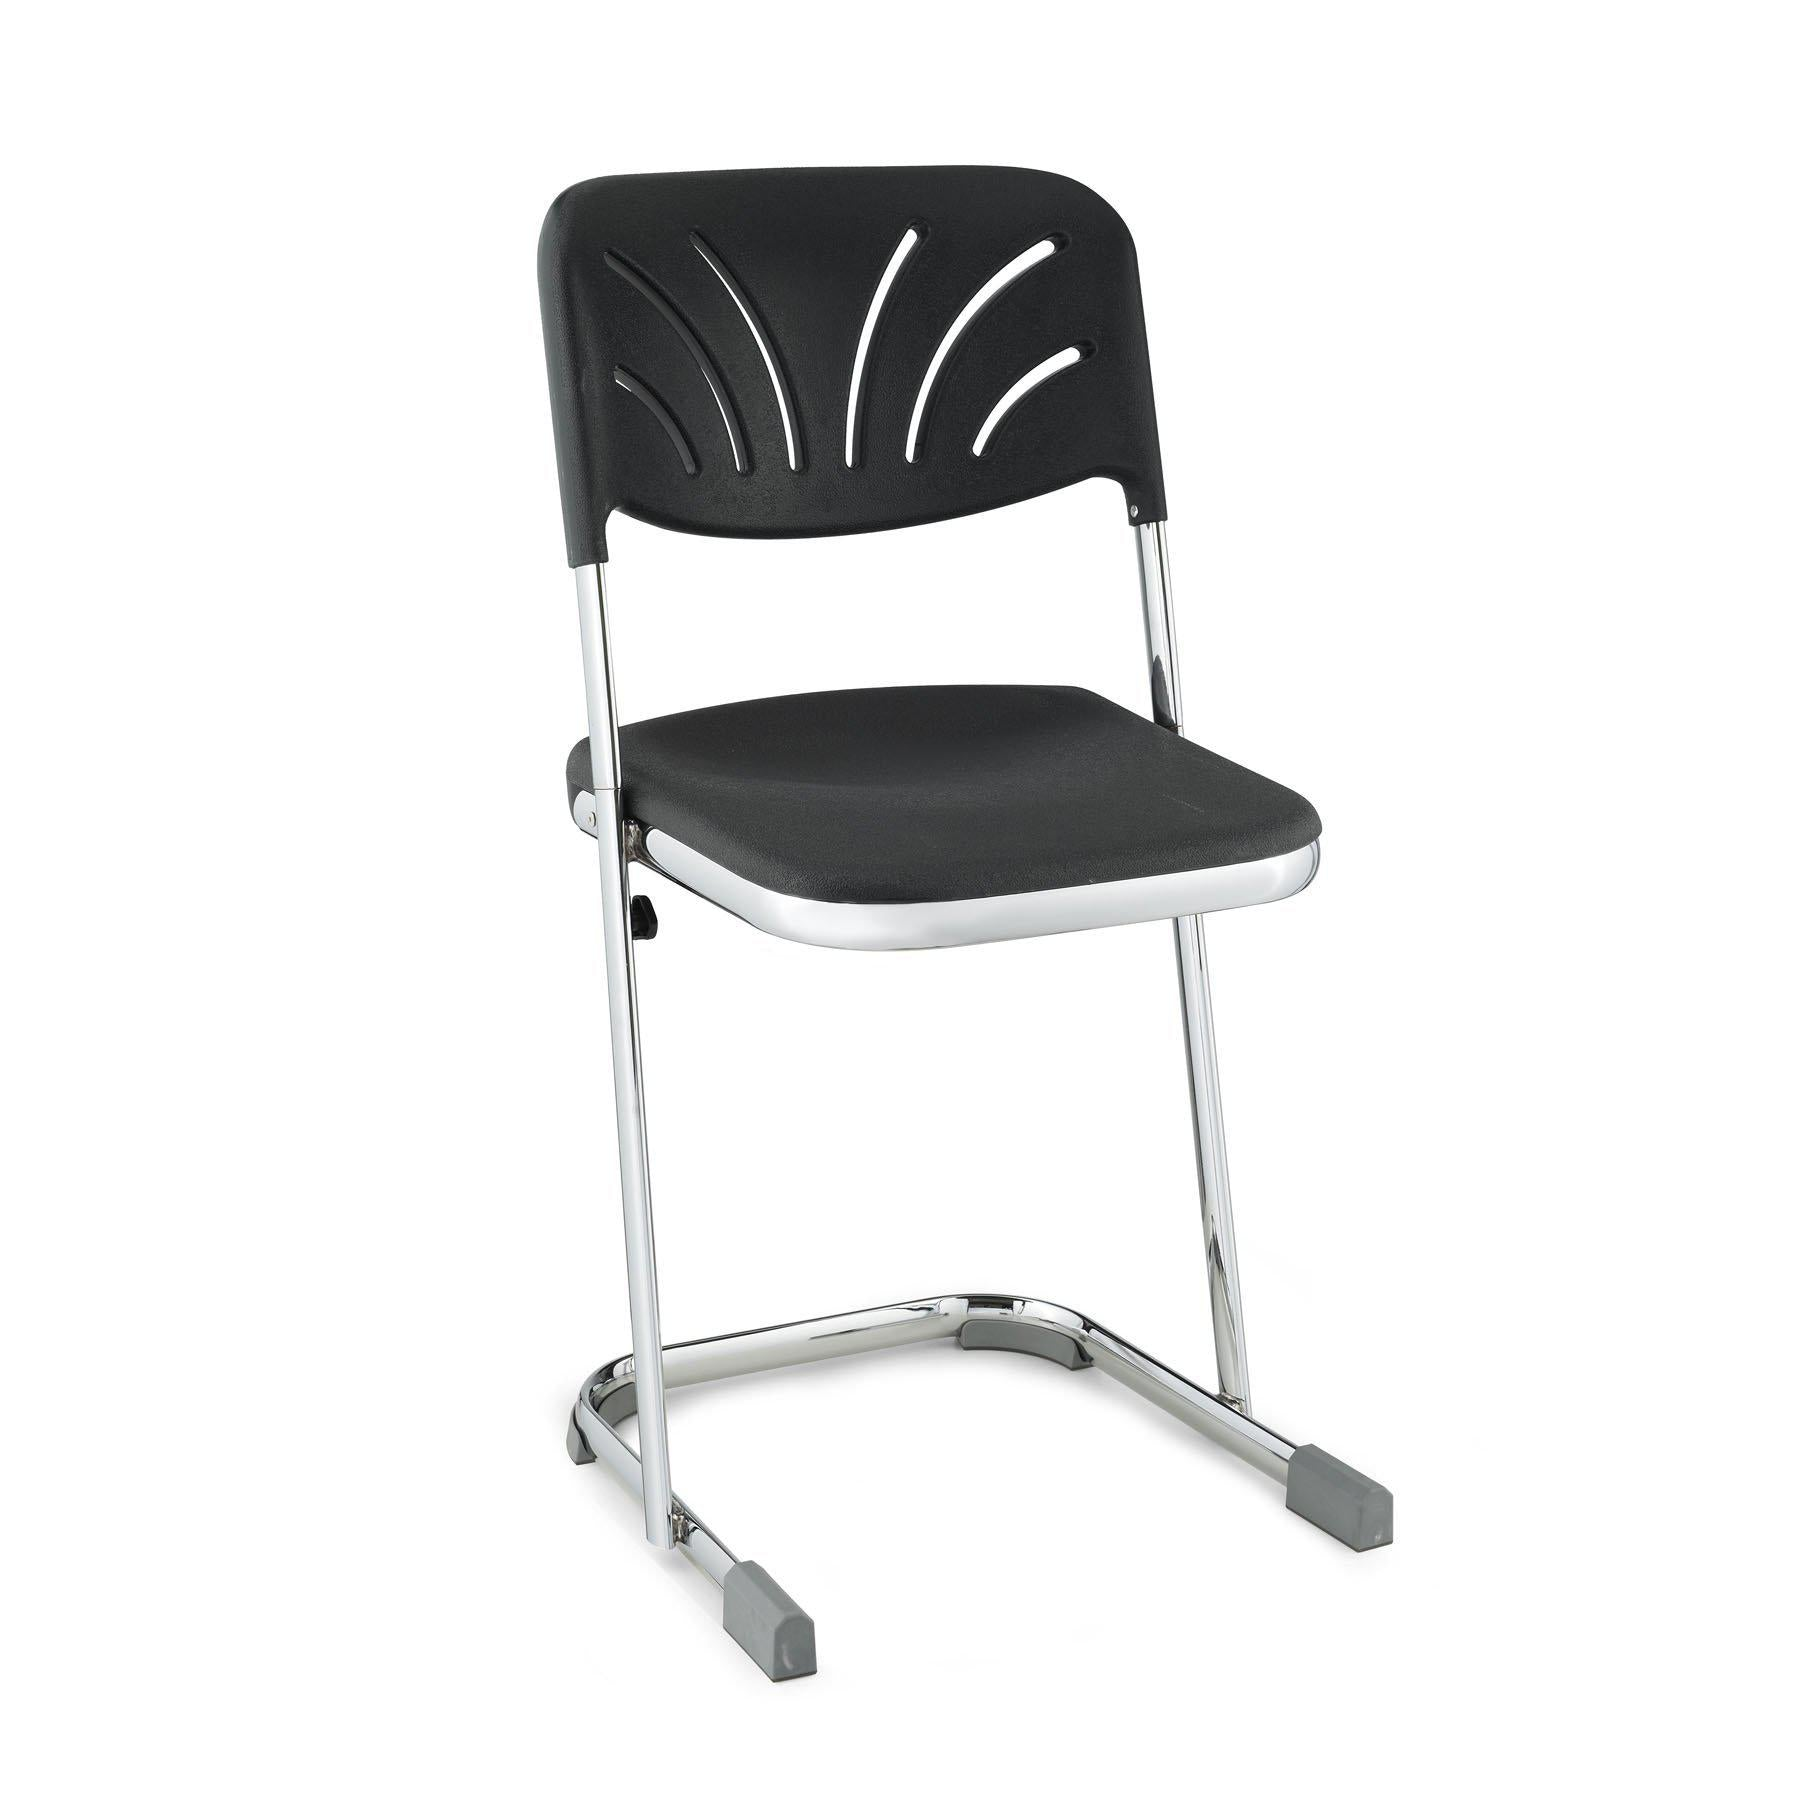 "Elephant Z-Stool With Backrest, Black Seat and Chrome Frame-Stools-18""-"